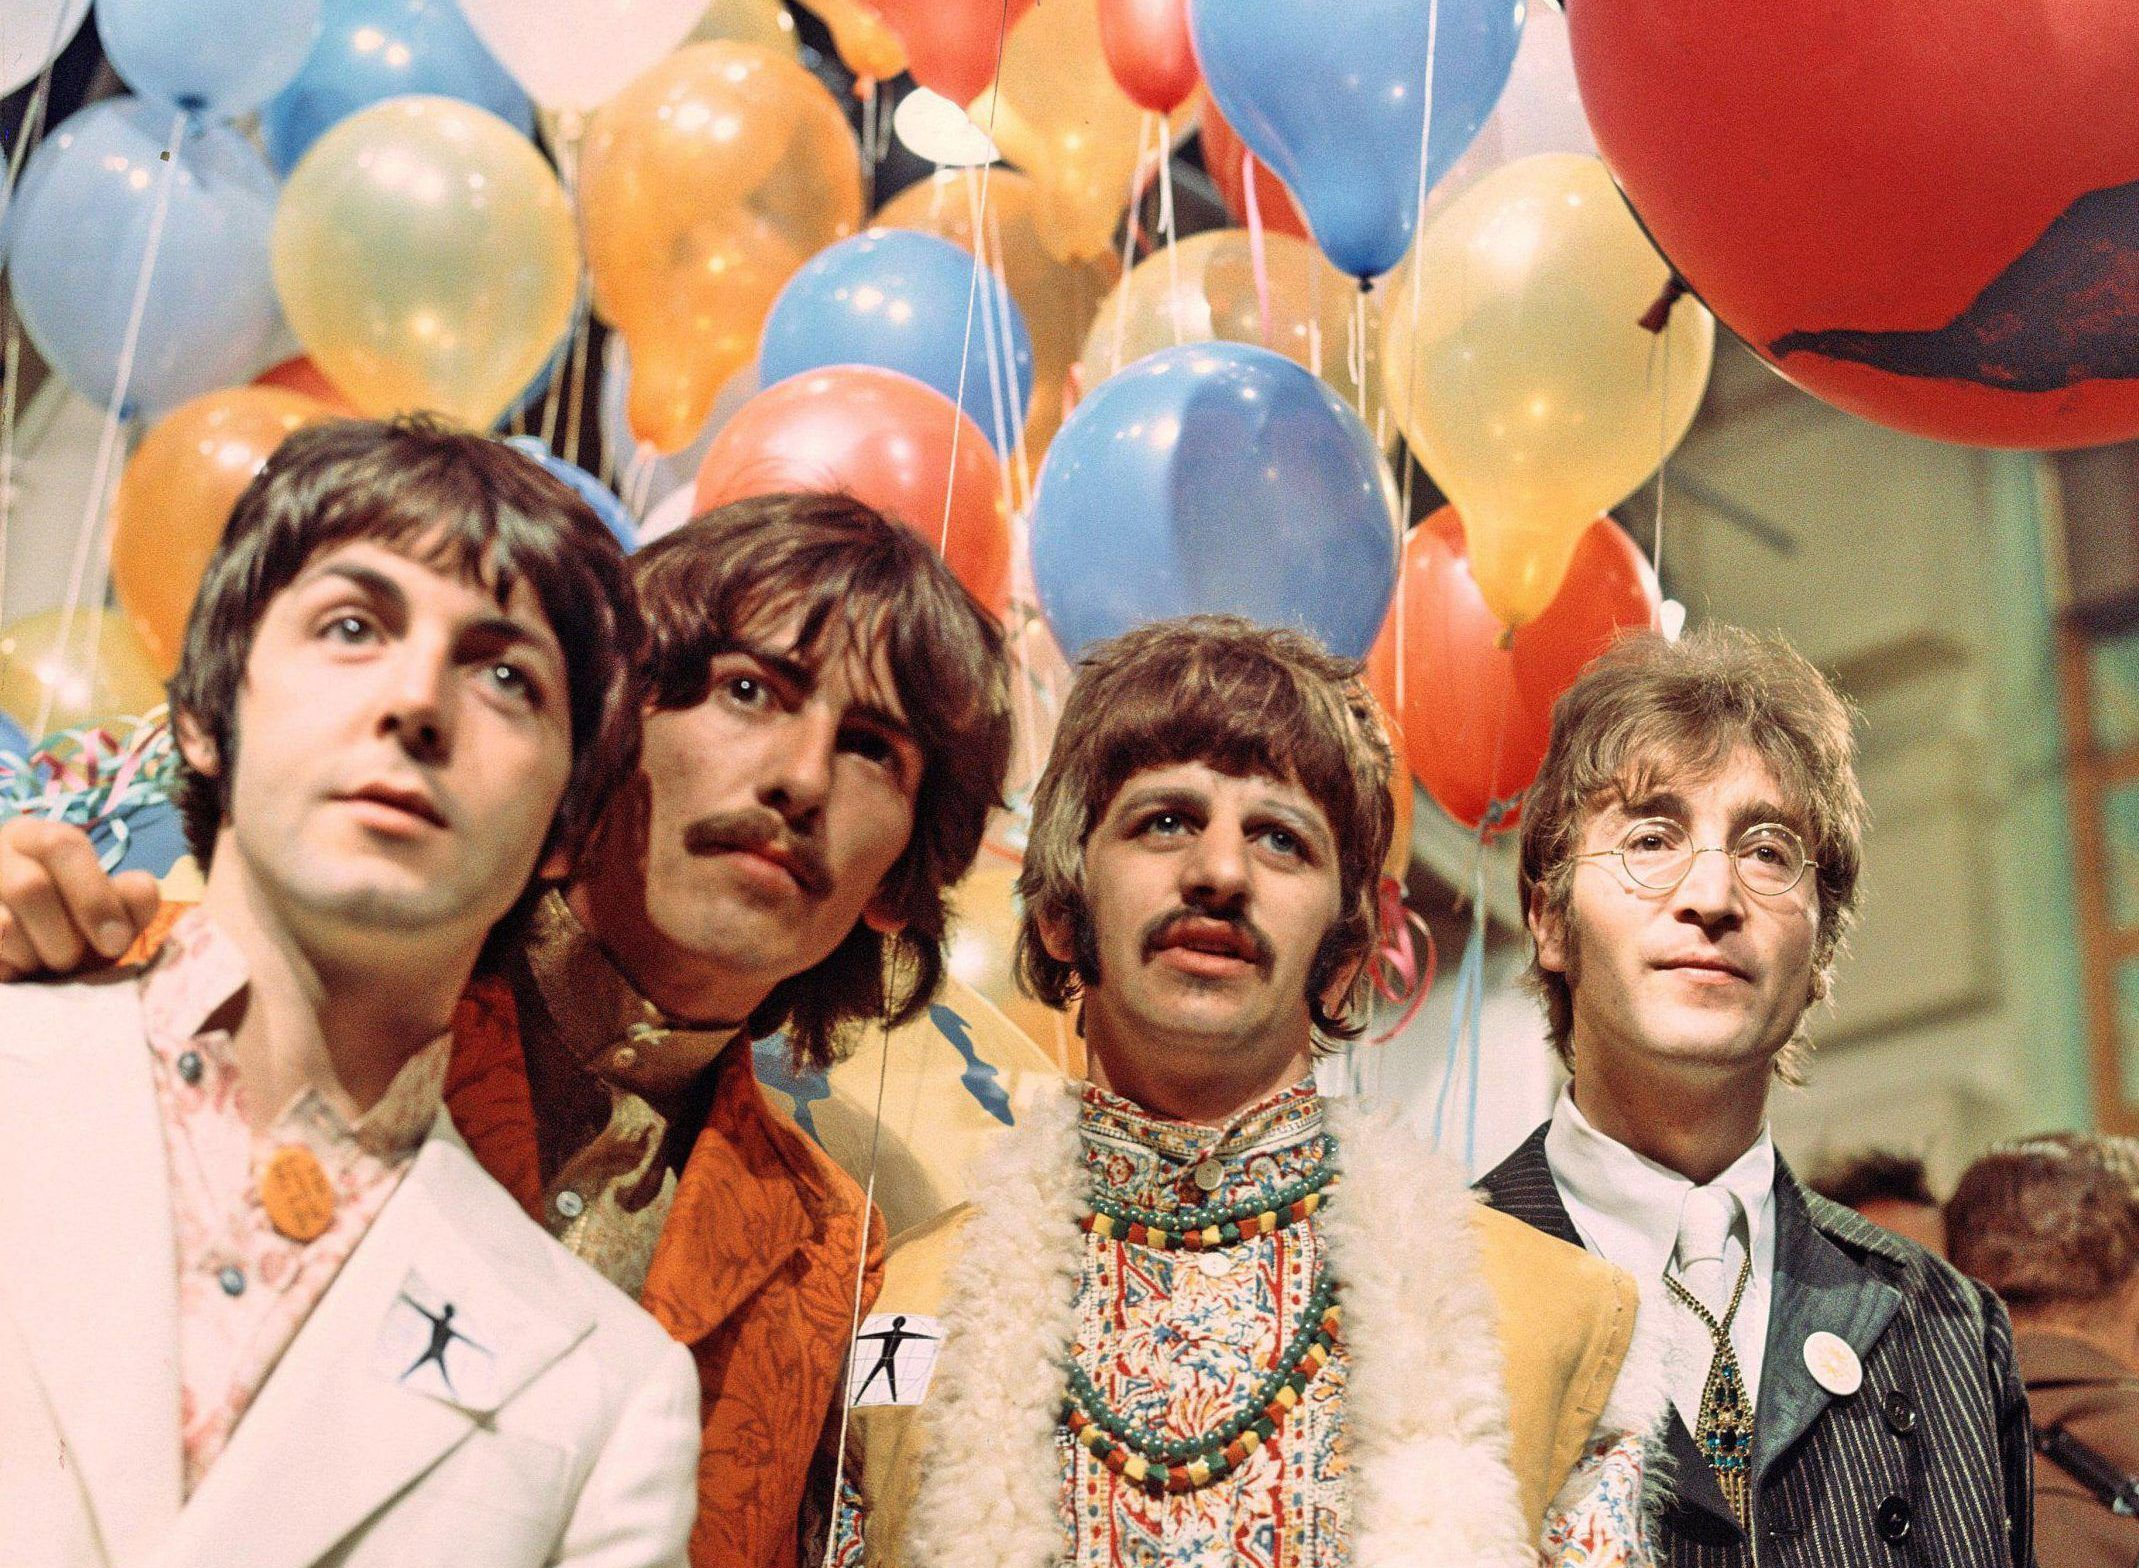 Sgt Pepper's Lonely Hearts Club Band is almost 50 – here are 15 things you didn't know about The Beatles' masterpiece